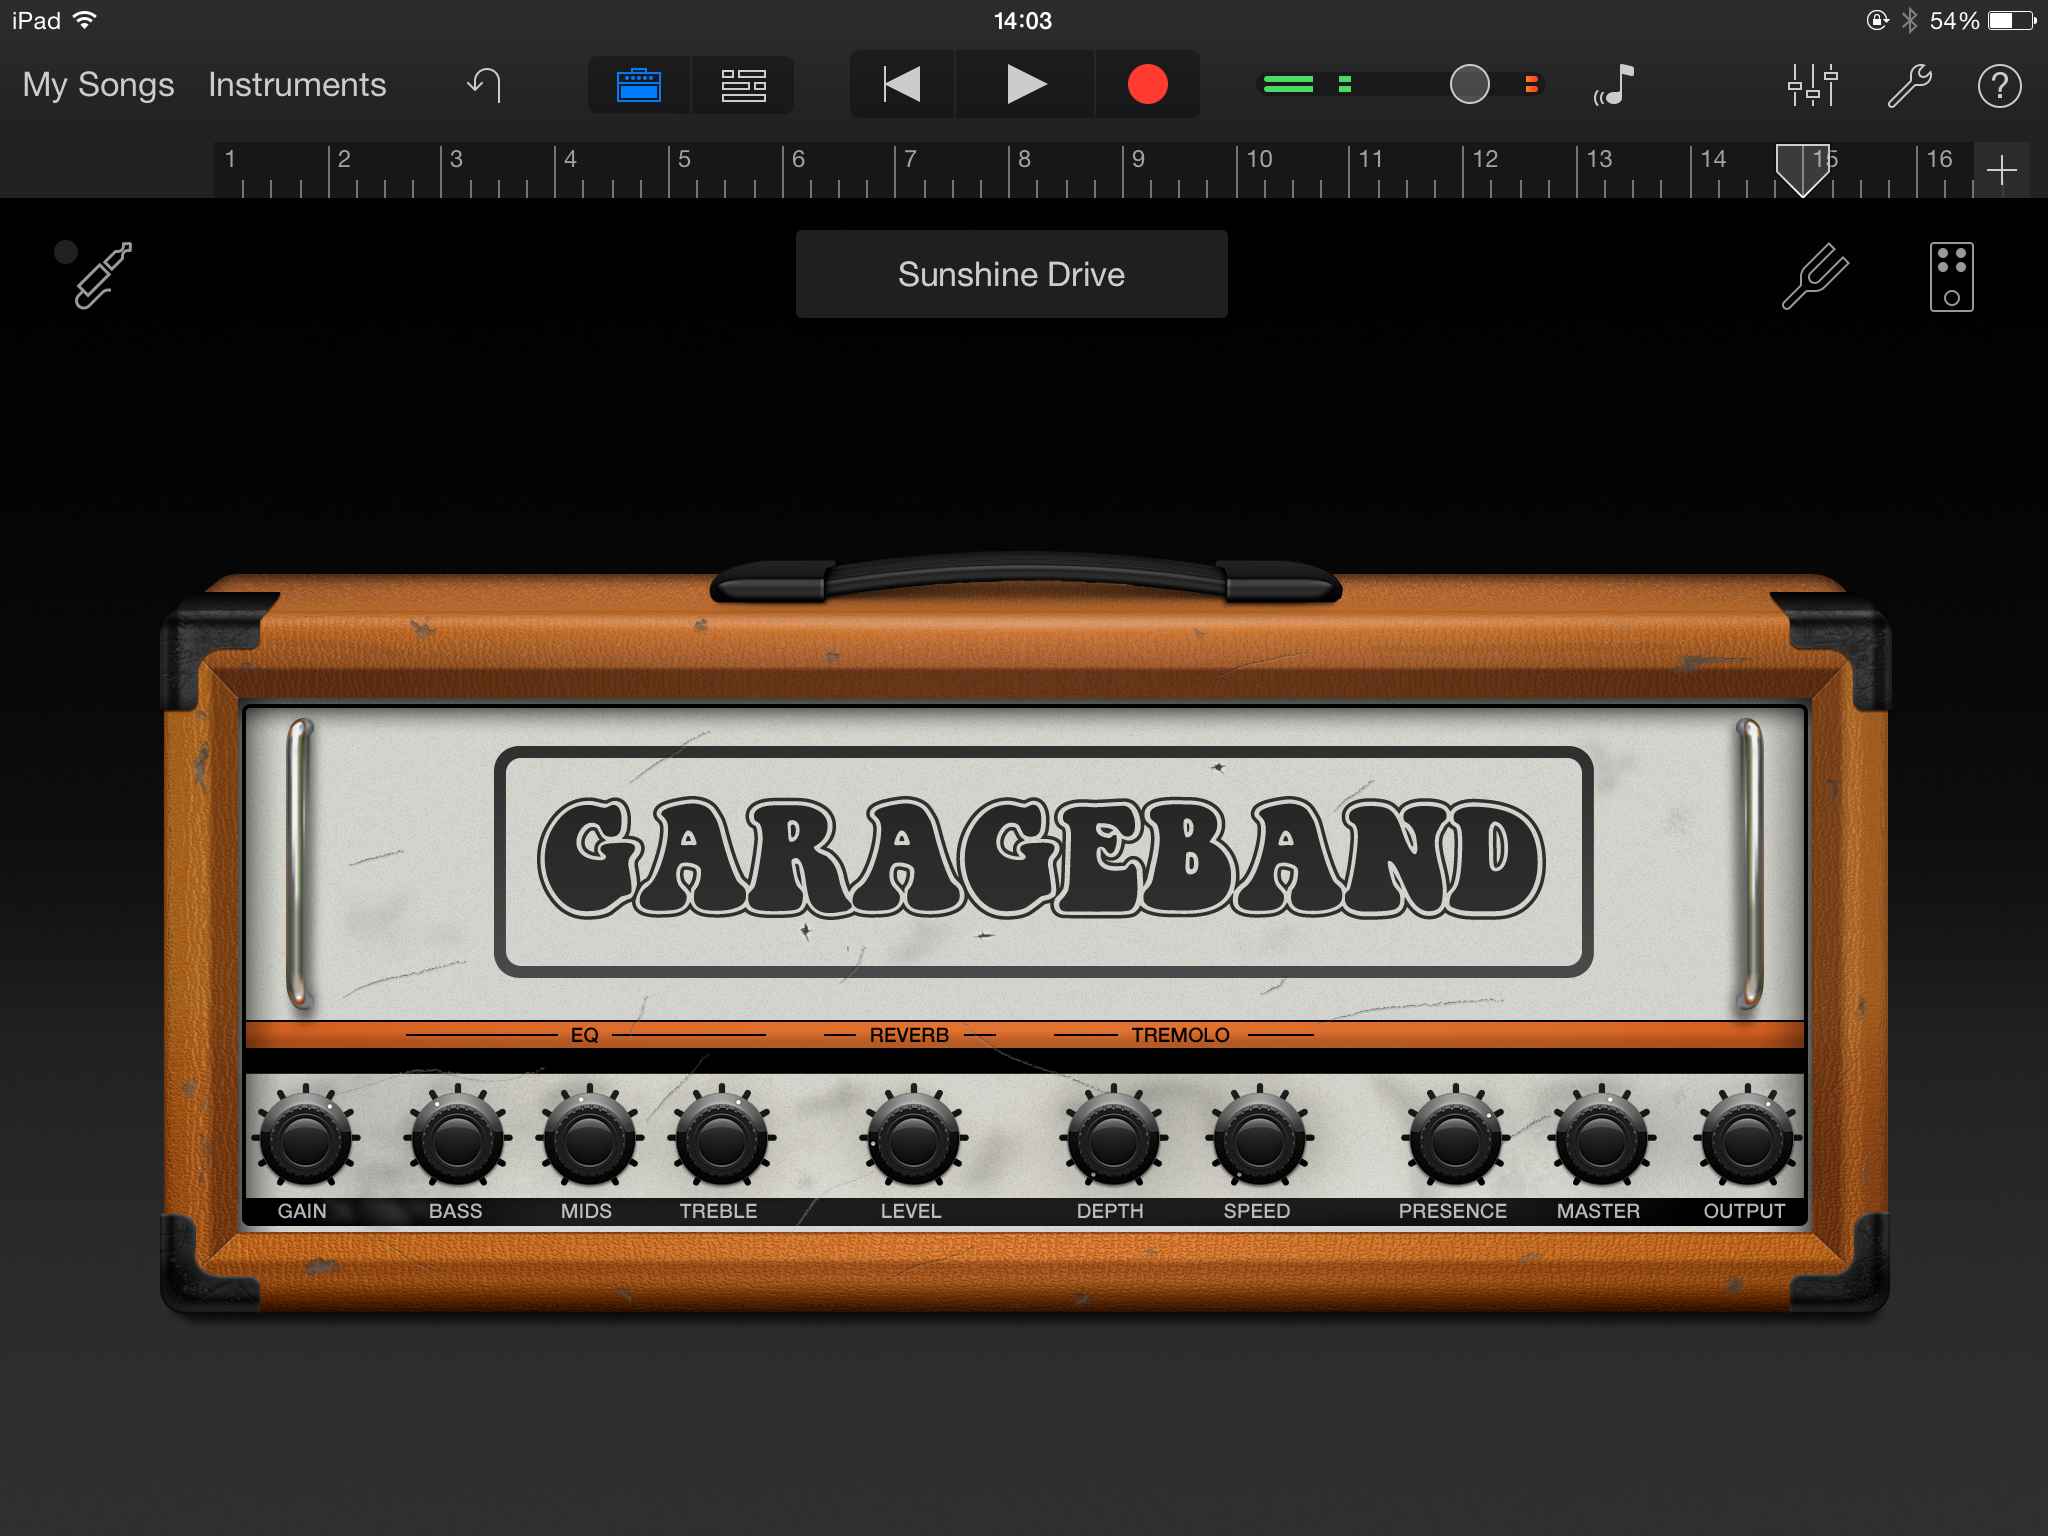 Garageband Tutorial - how to use Garageband on iPad & iPhone